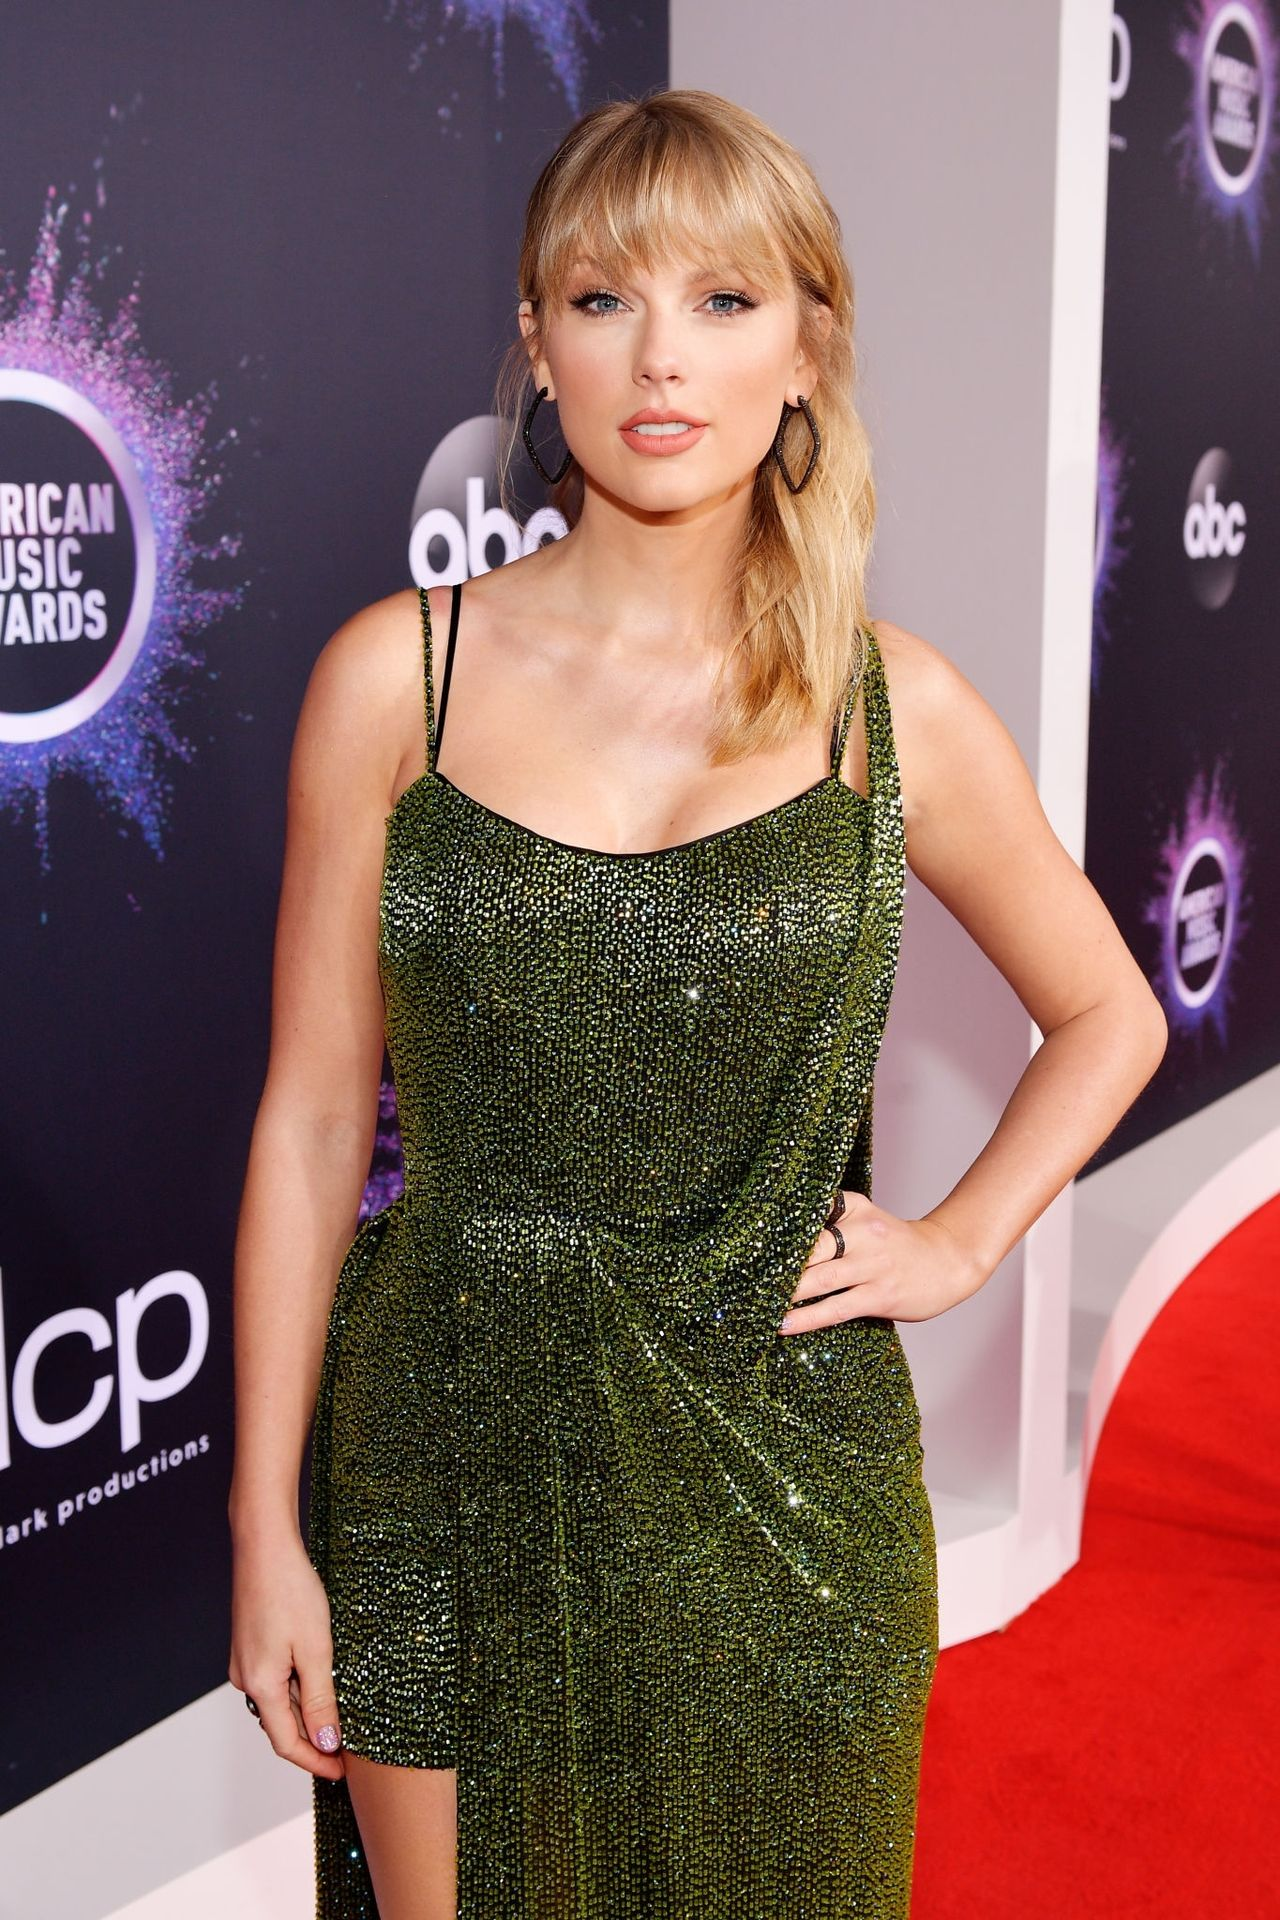 Taylor Swifts Sexiest Pictures from American Music Awards